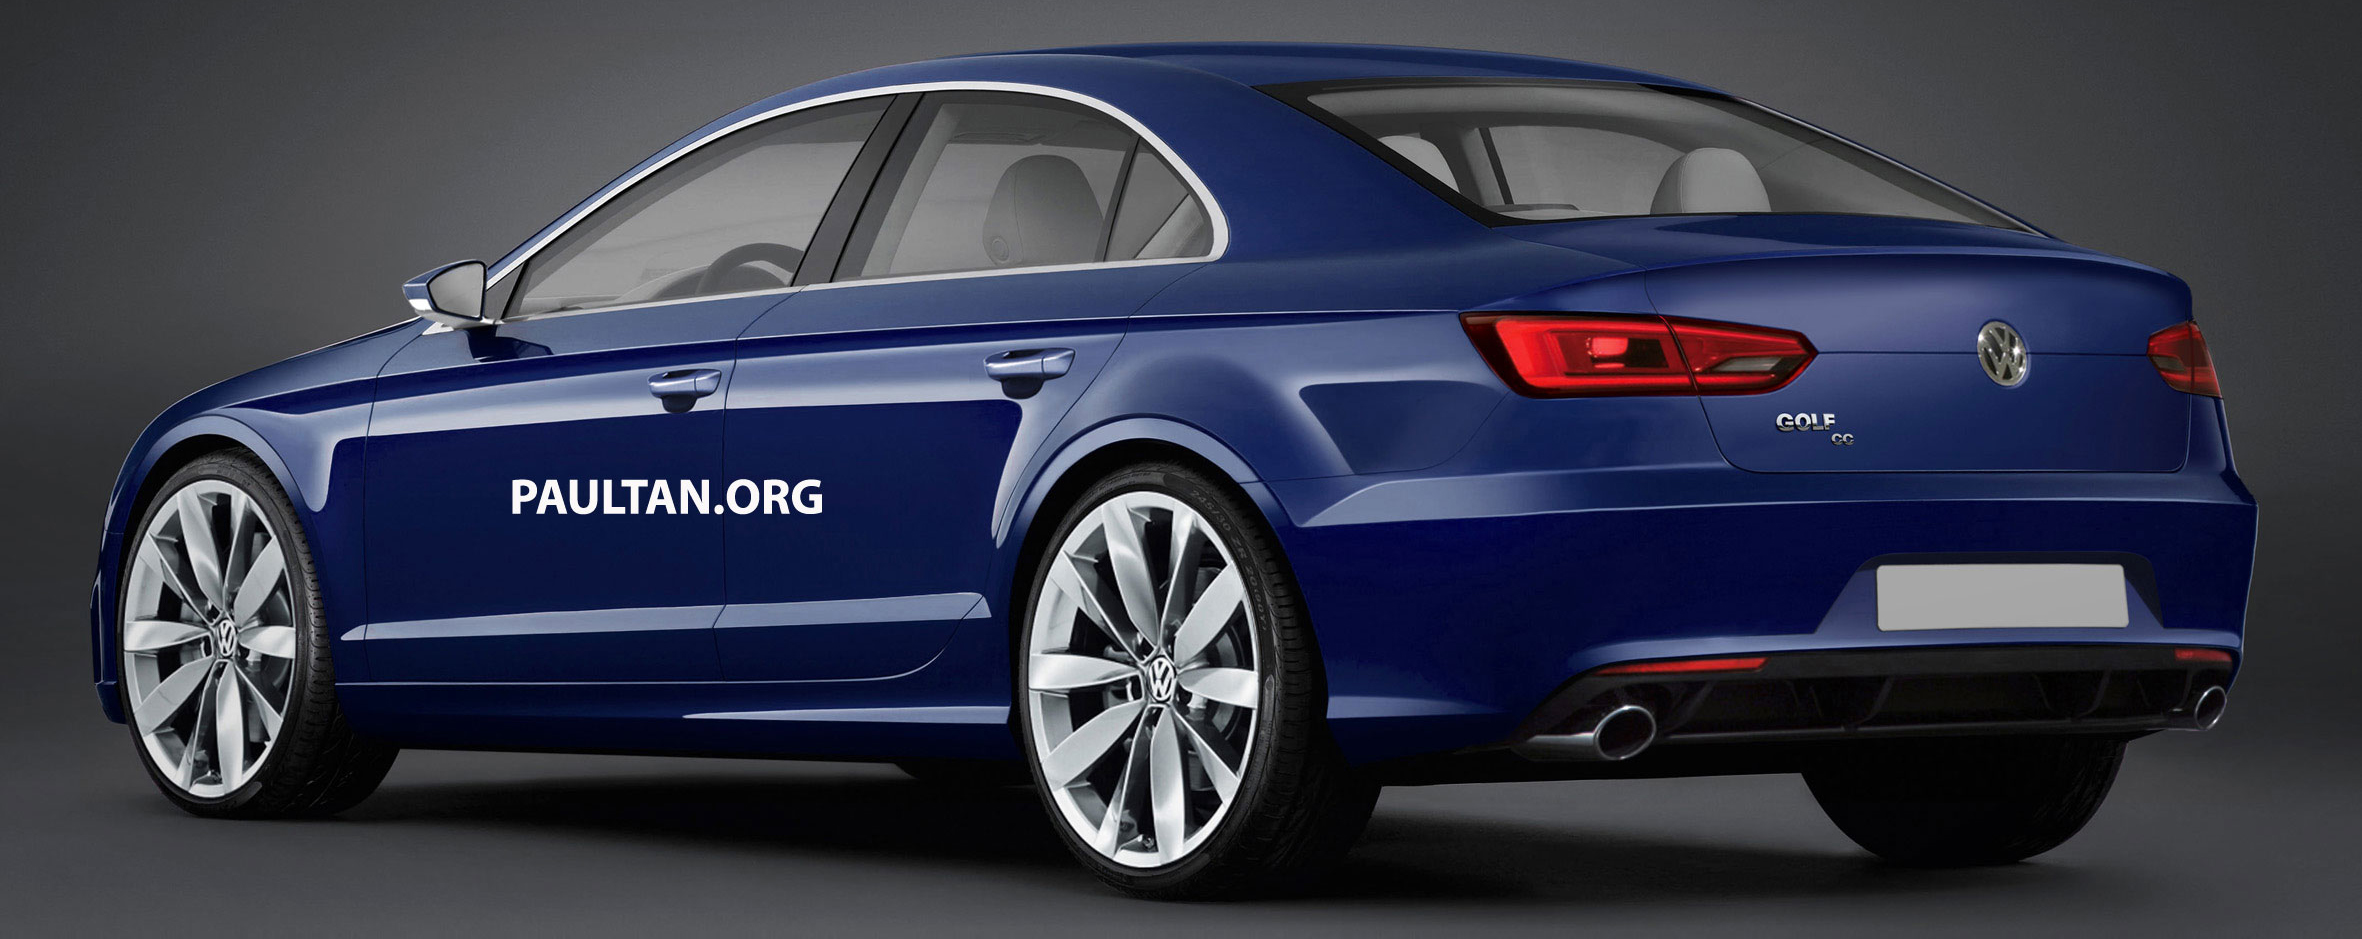 Volkswagen Golf CC rendered, to surface in 2015